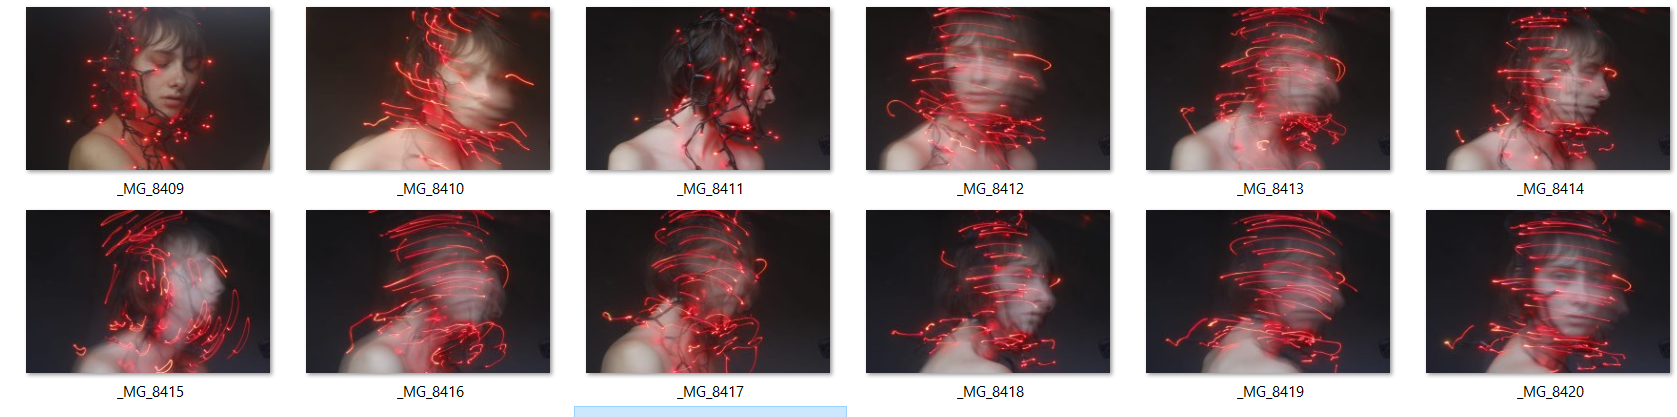 Some of the failed attempts at creating a selfportrait with lights. I didn't like how blurry some of the shots were, nor the absolutely clarity of the others. That is why I needed to retake the photos numerous times before finally nailing the right combination of shutter speed and my body movement.